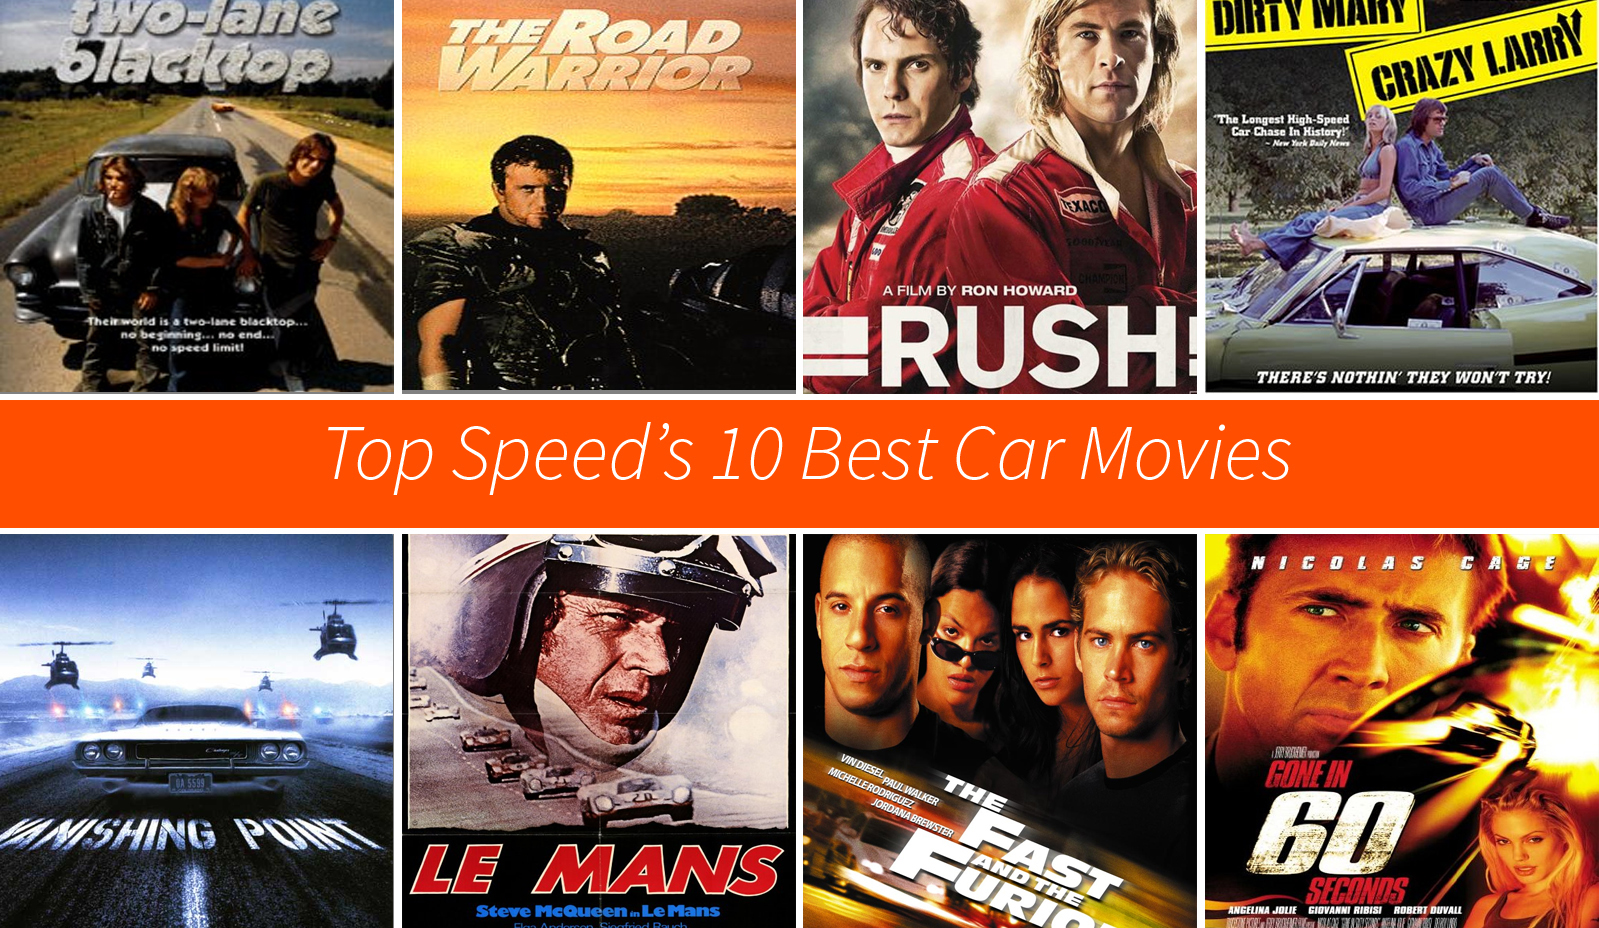 TopSpeed's 10 Best Car Movies | Top Speed